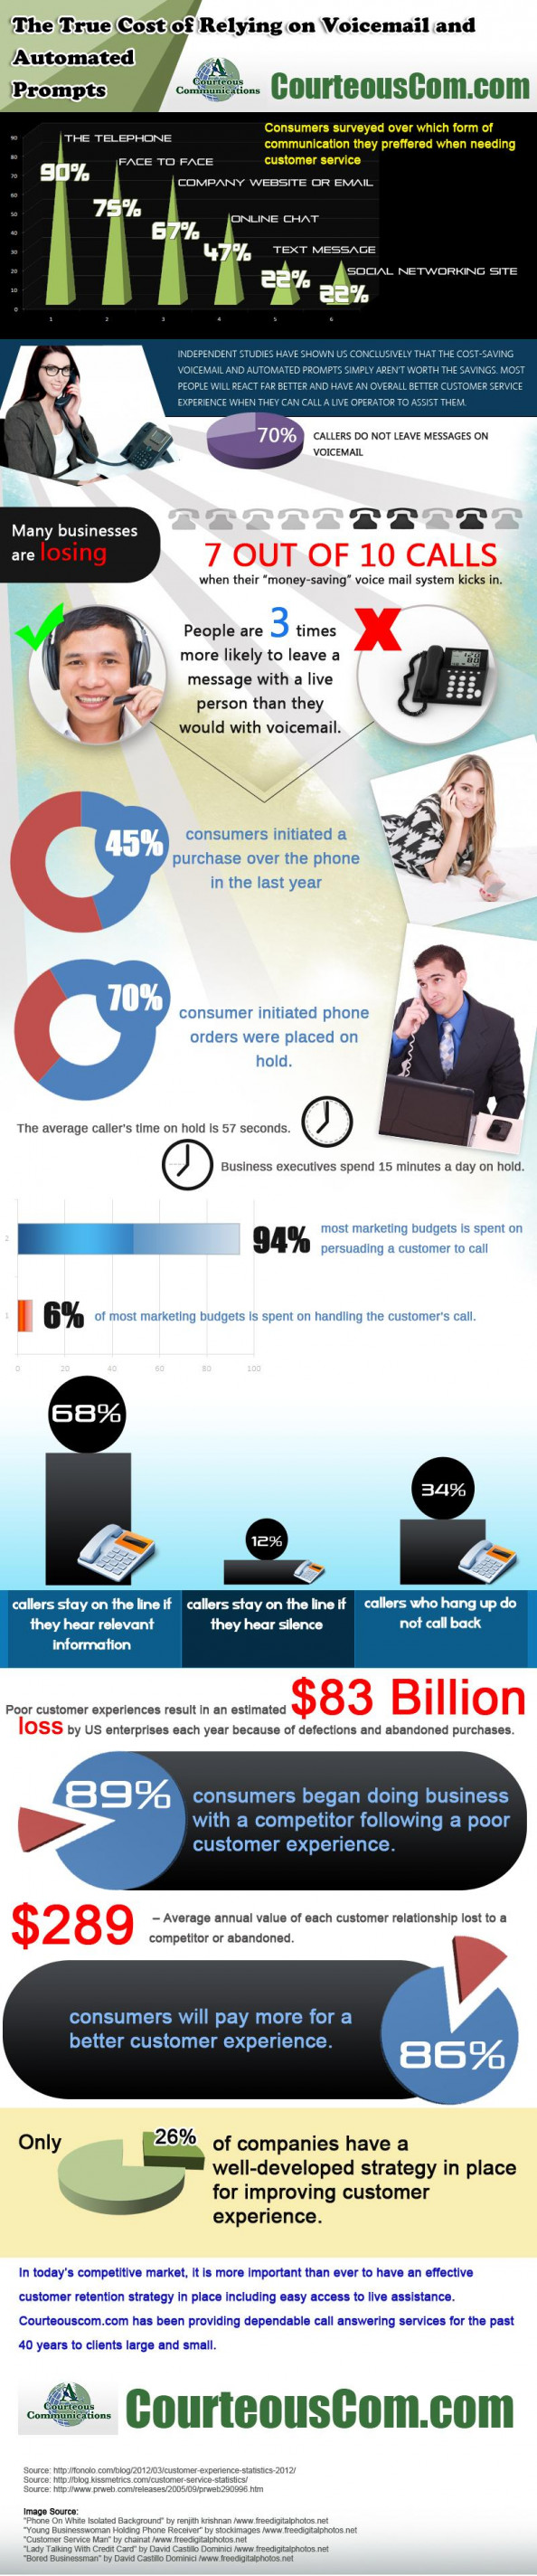 The True Cost of Relying on Voicemail and Automated Prompts Infographic